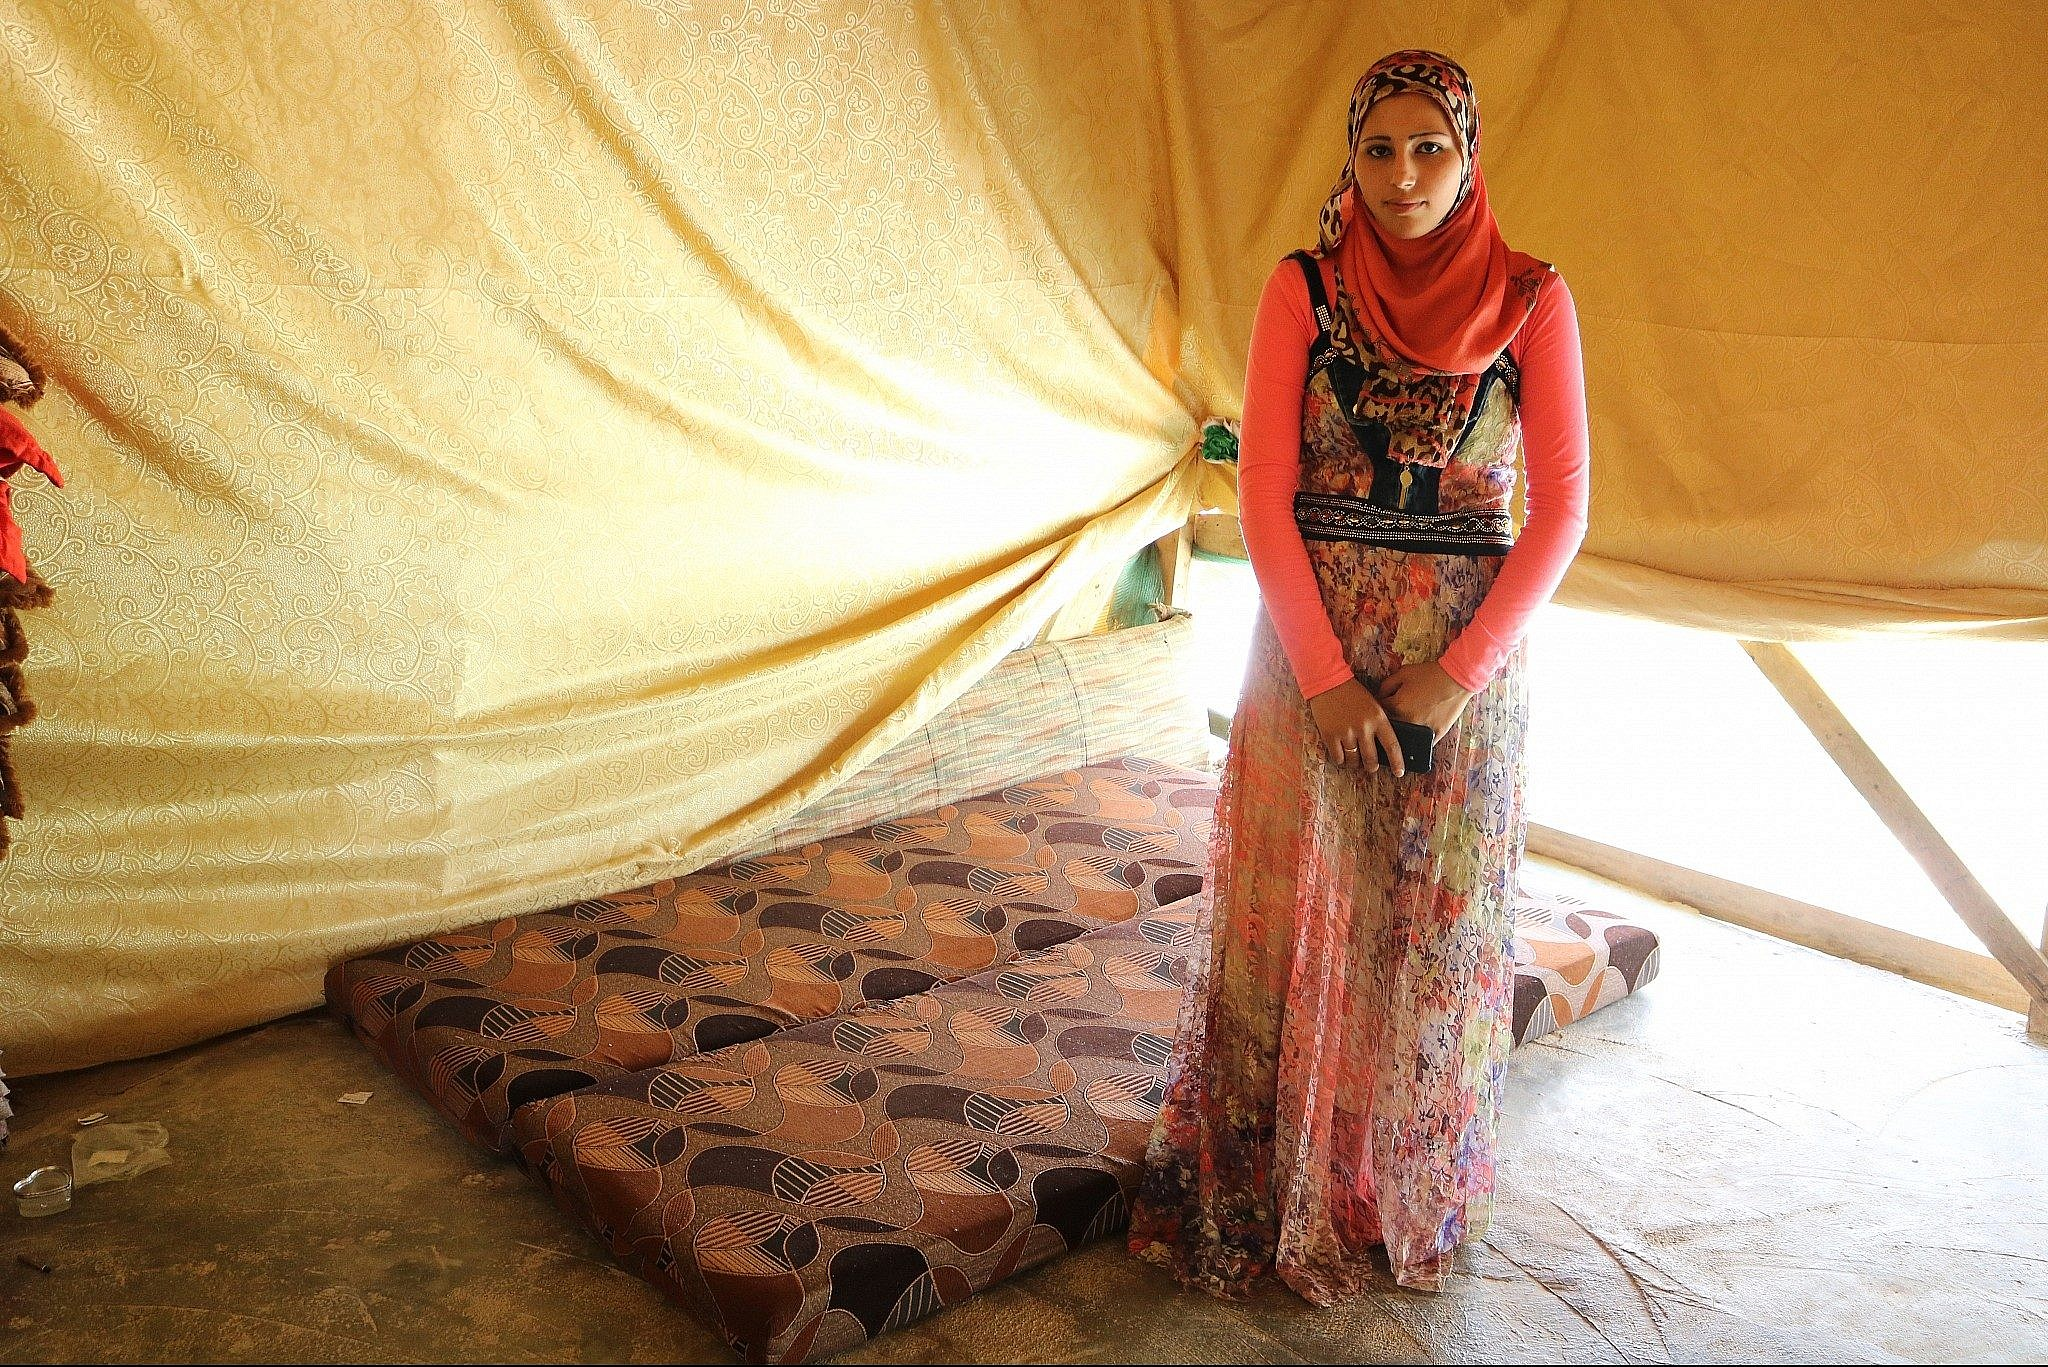 Fadia Ammar Al Mohamad, who didn't meet her husband until the day of their wedding, stands next to the cot they sleep on in their tent. (Lisa Khoury/ Times of Israel)